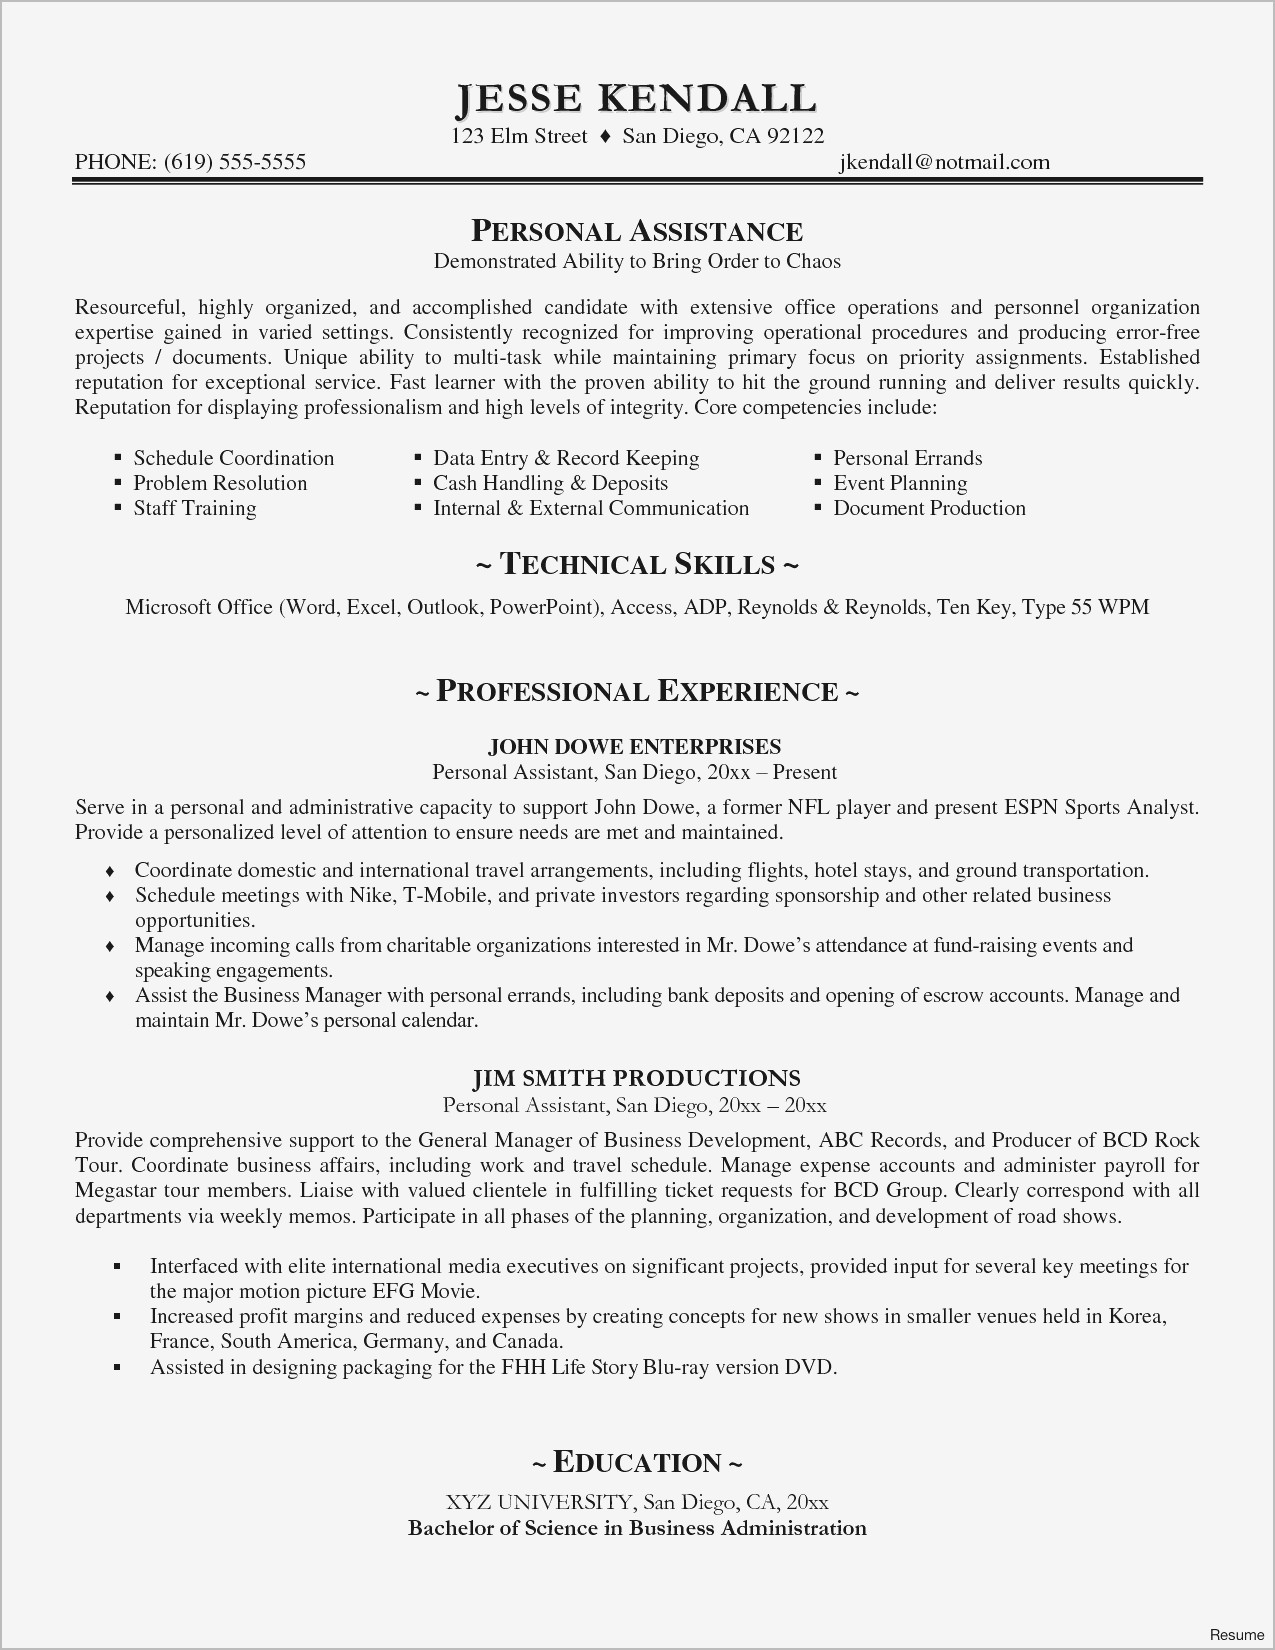 Small Business Owner Resume - Business Owner Resume Examples New 19 Beautiful Small Business Owner